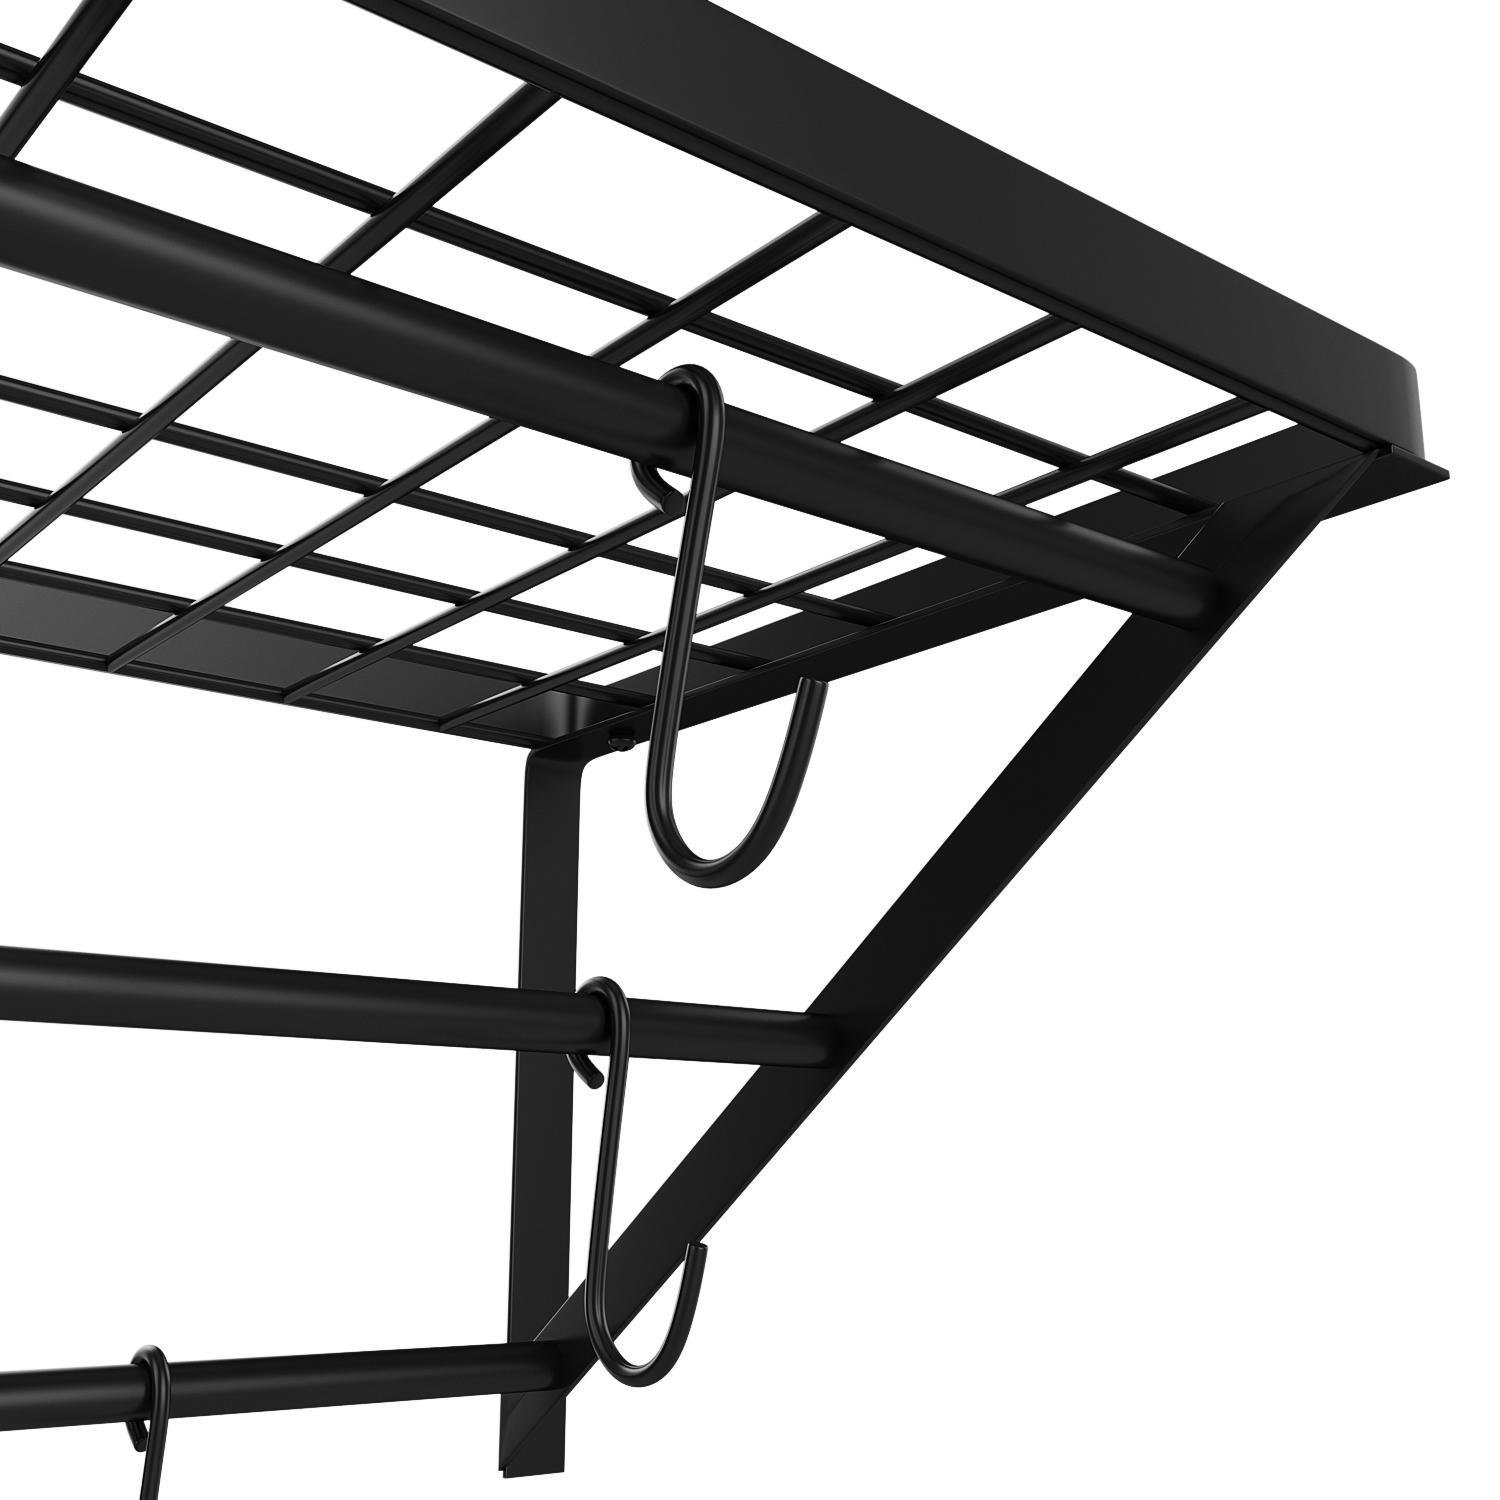 Utheing Kitchen Wall Mount Pot Storage Rack Pans Organizer Hanger with 10 Hook for Kitchen Cookware, Utensils, Pans and Books by Utheing (Image #6)